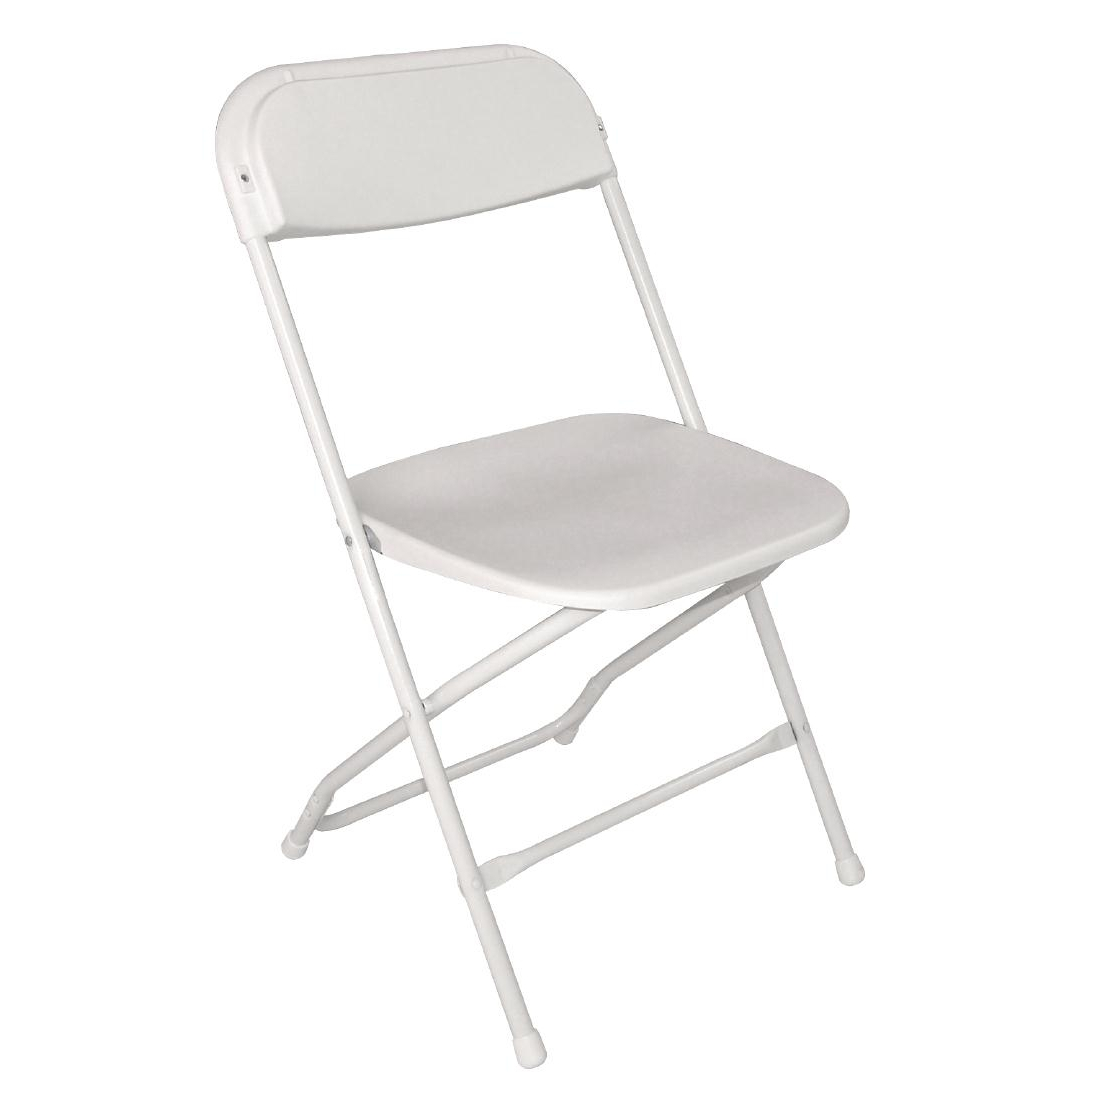 White plastic folding chairs - Folding Chair Pack 10